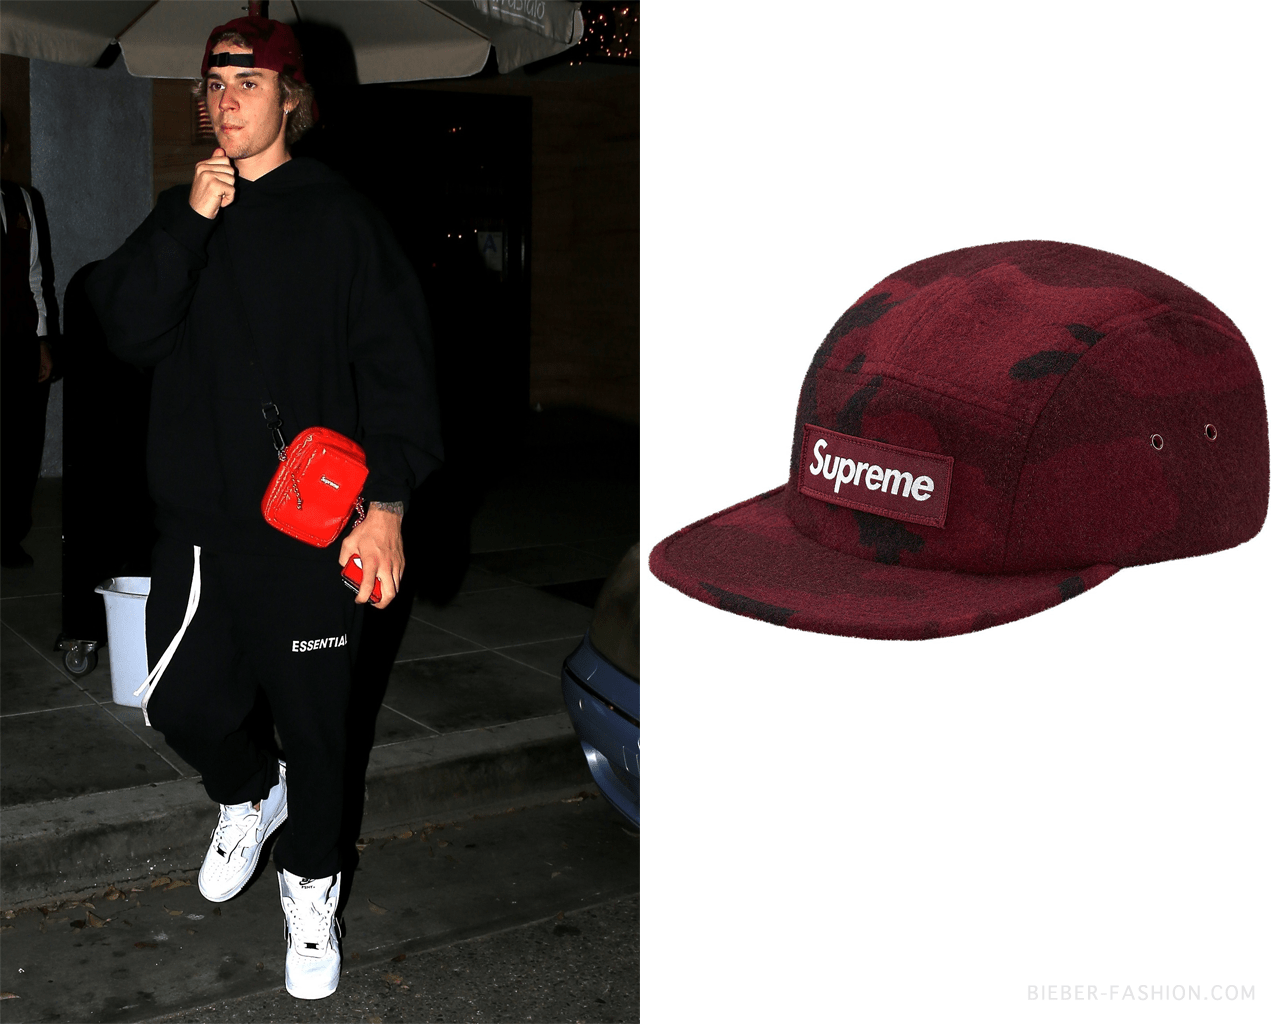 Supreme Camo Wool Camp Cap In Burgundy Not A Justin Bieber Jb24 Girls Pajamas Bear